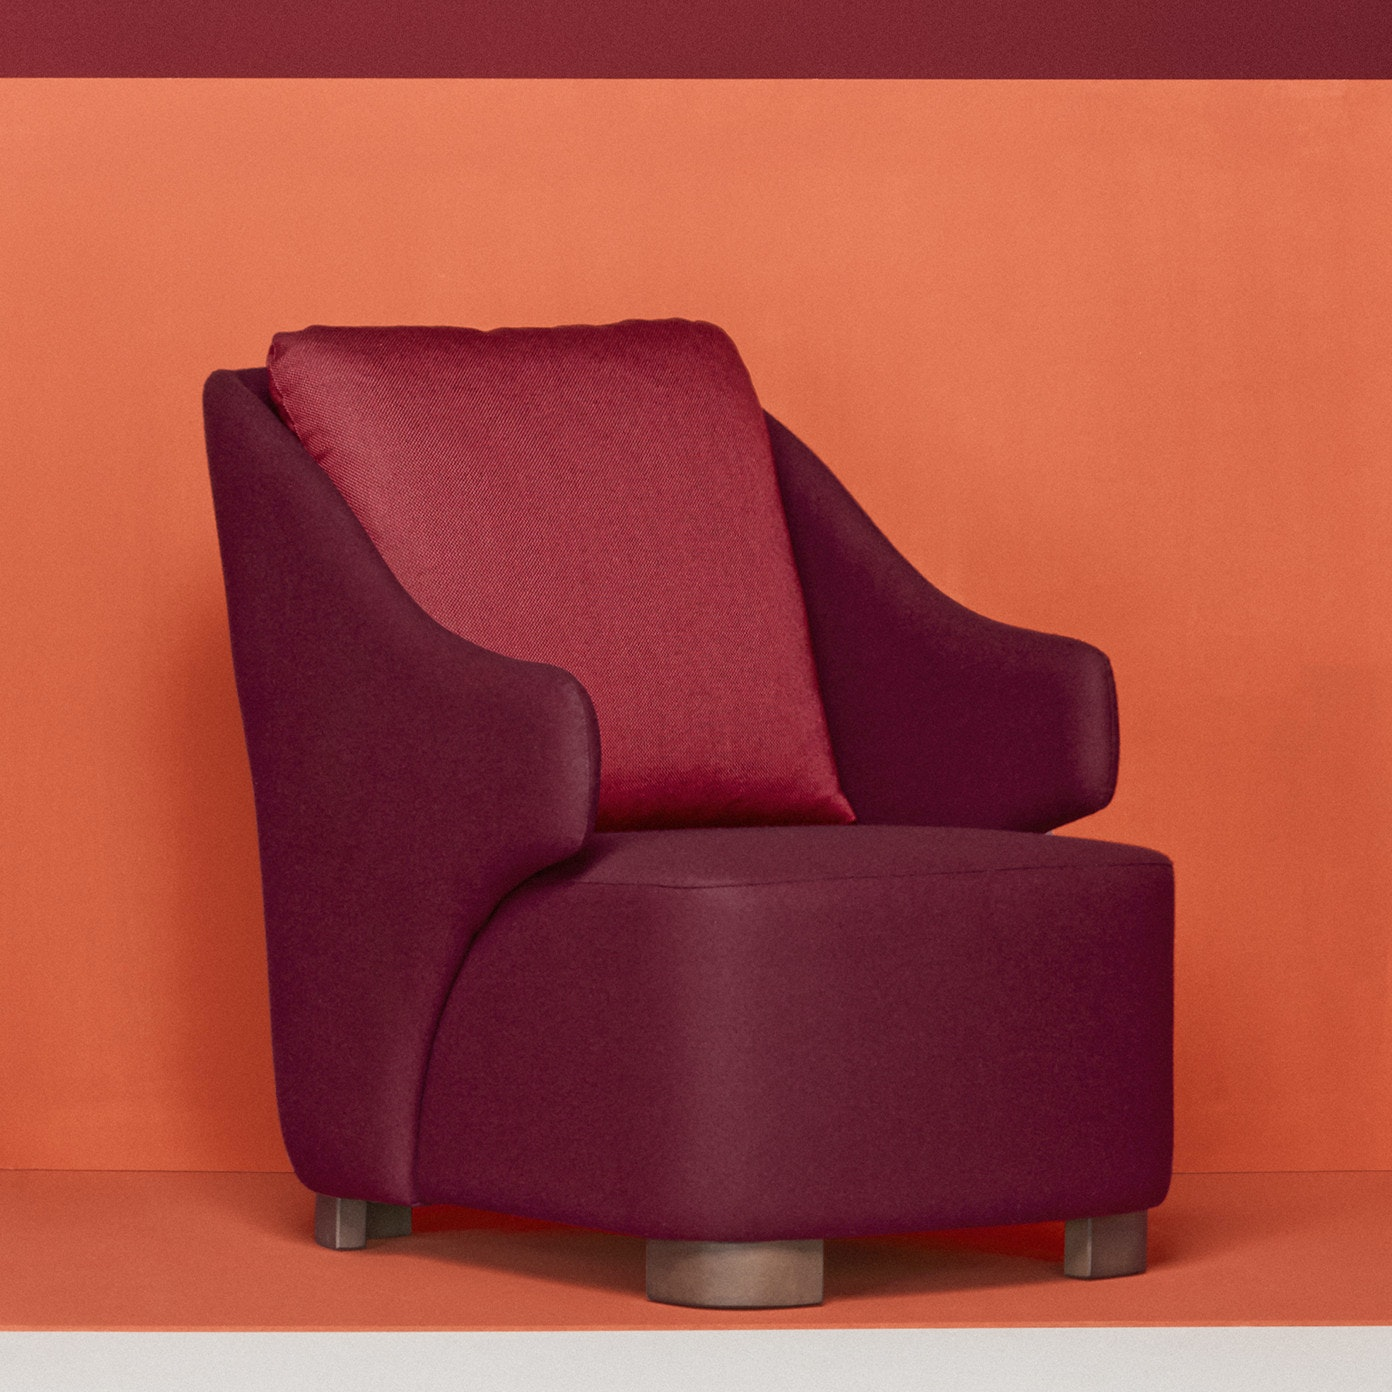 Modern Seating By Contemporary Designers At Haute Living